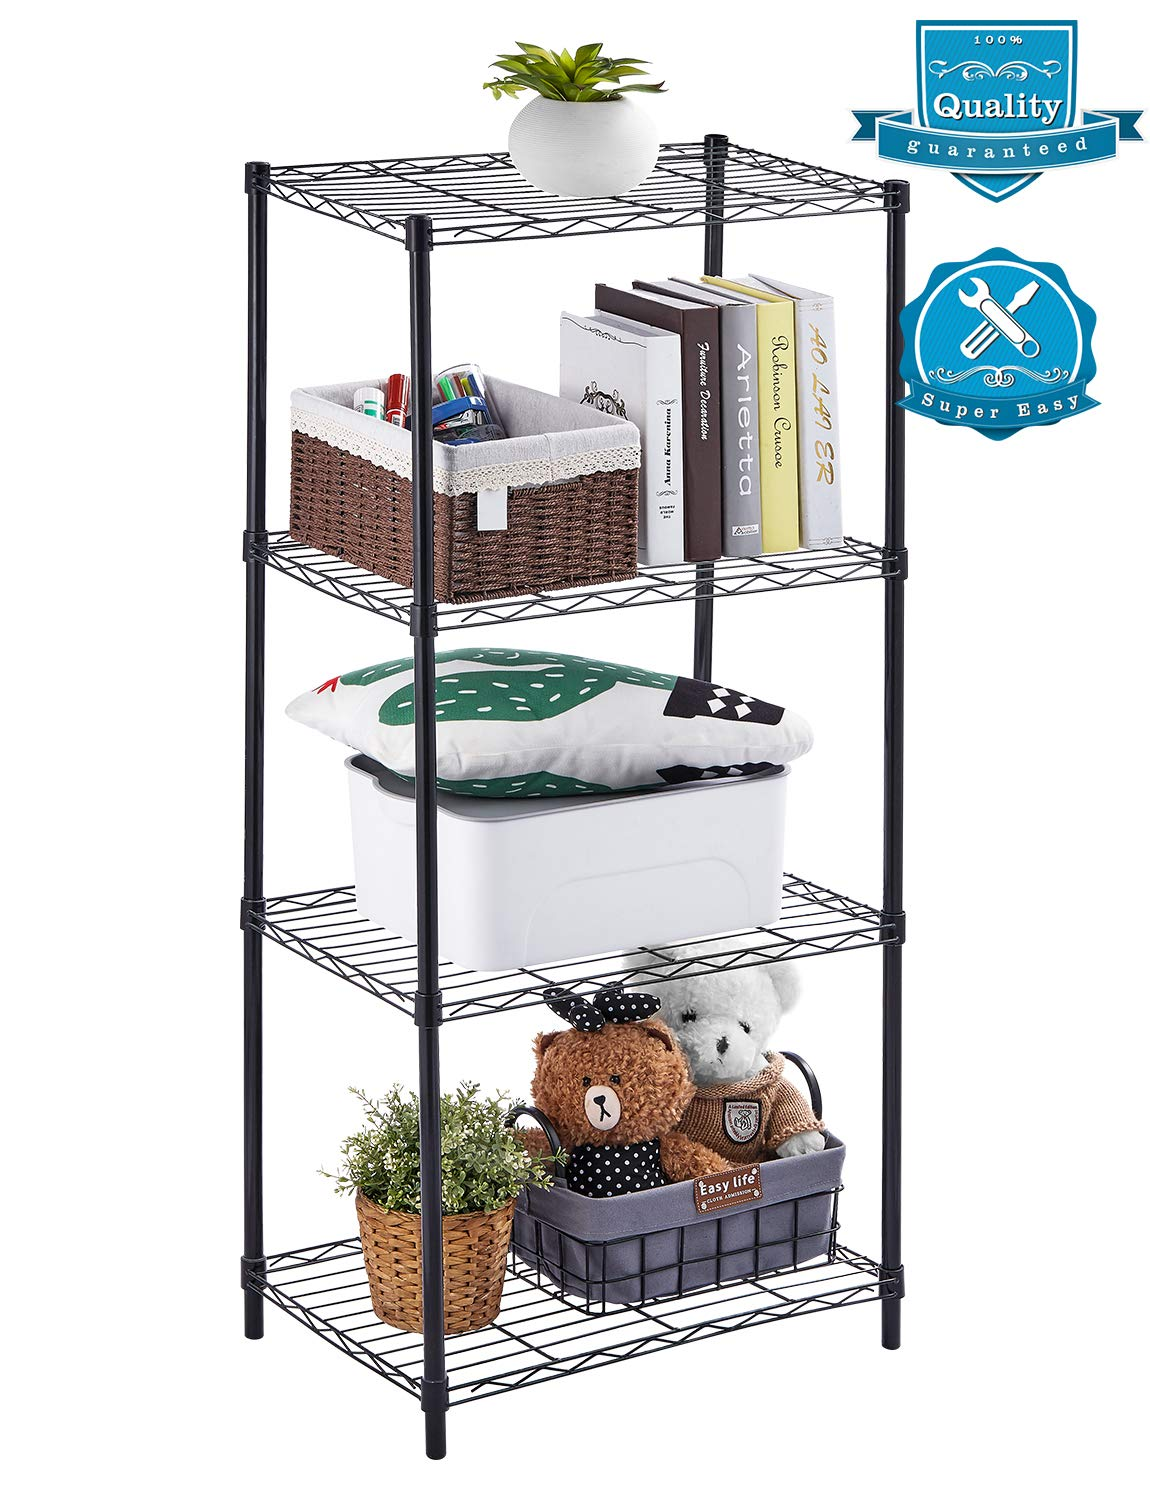 AOOU Shelf 4 Tier Shelving Unit, Wire Shelf Unit Free Standing, Classic Metal Steel Storage Rack Sturdy for use in Pantry, Living Room, Kitchen, Garage, Coated with Black by AOOU